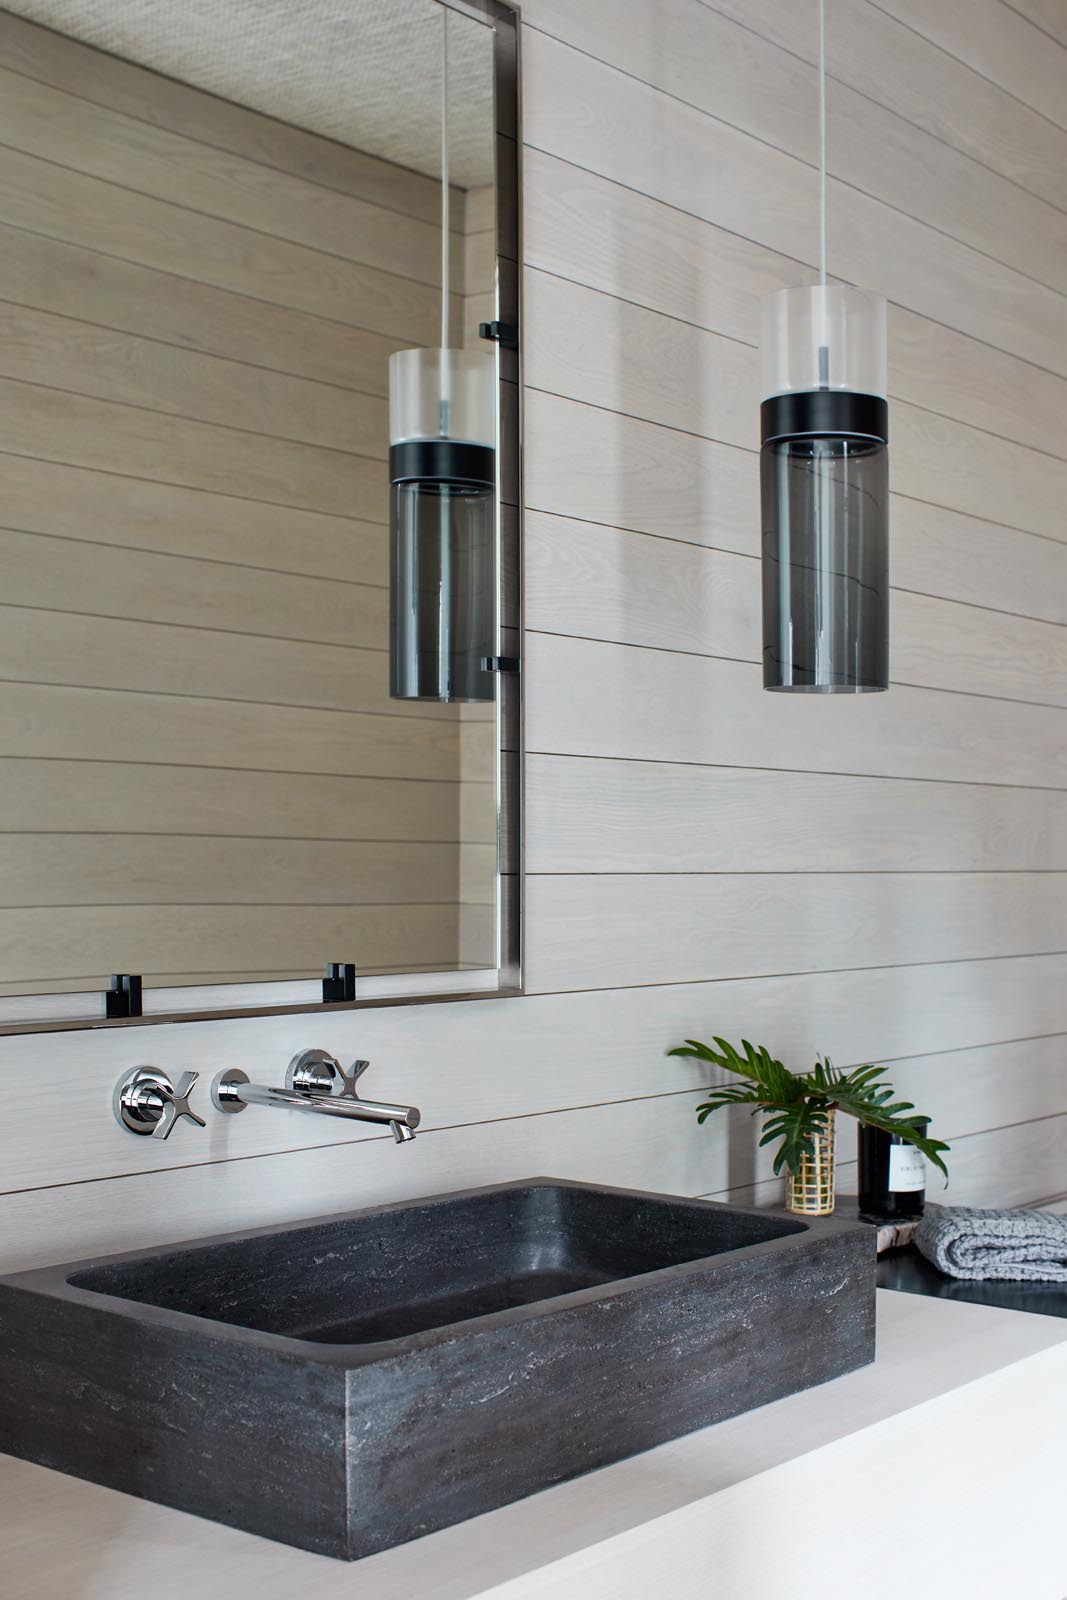 A modern bathroom with light wood walls that are contrasted by a black pendant light and sink.